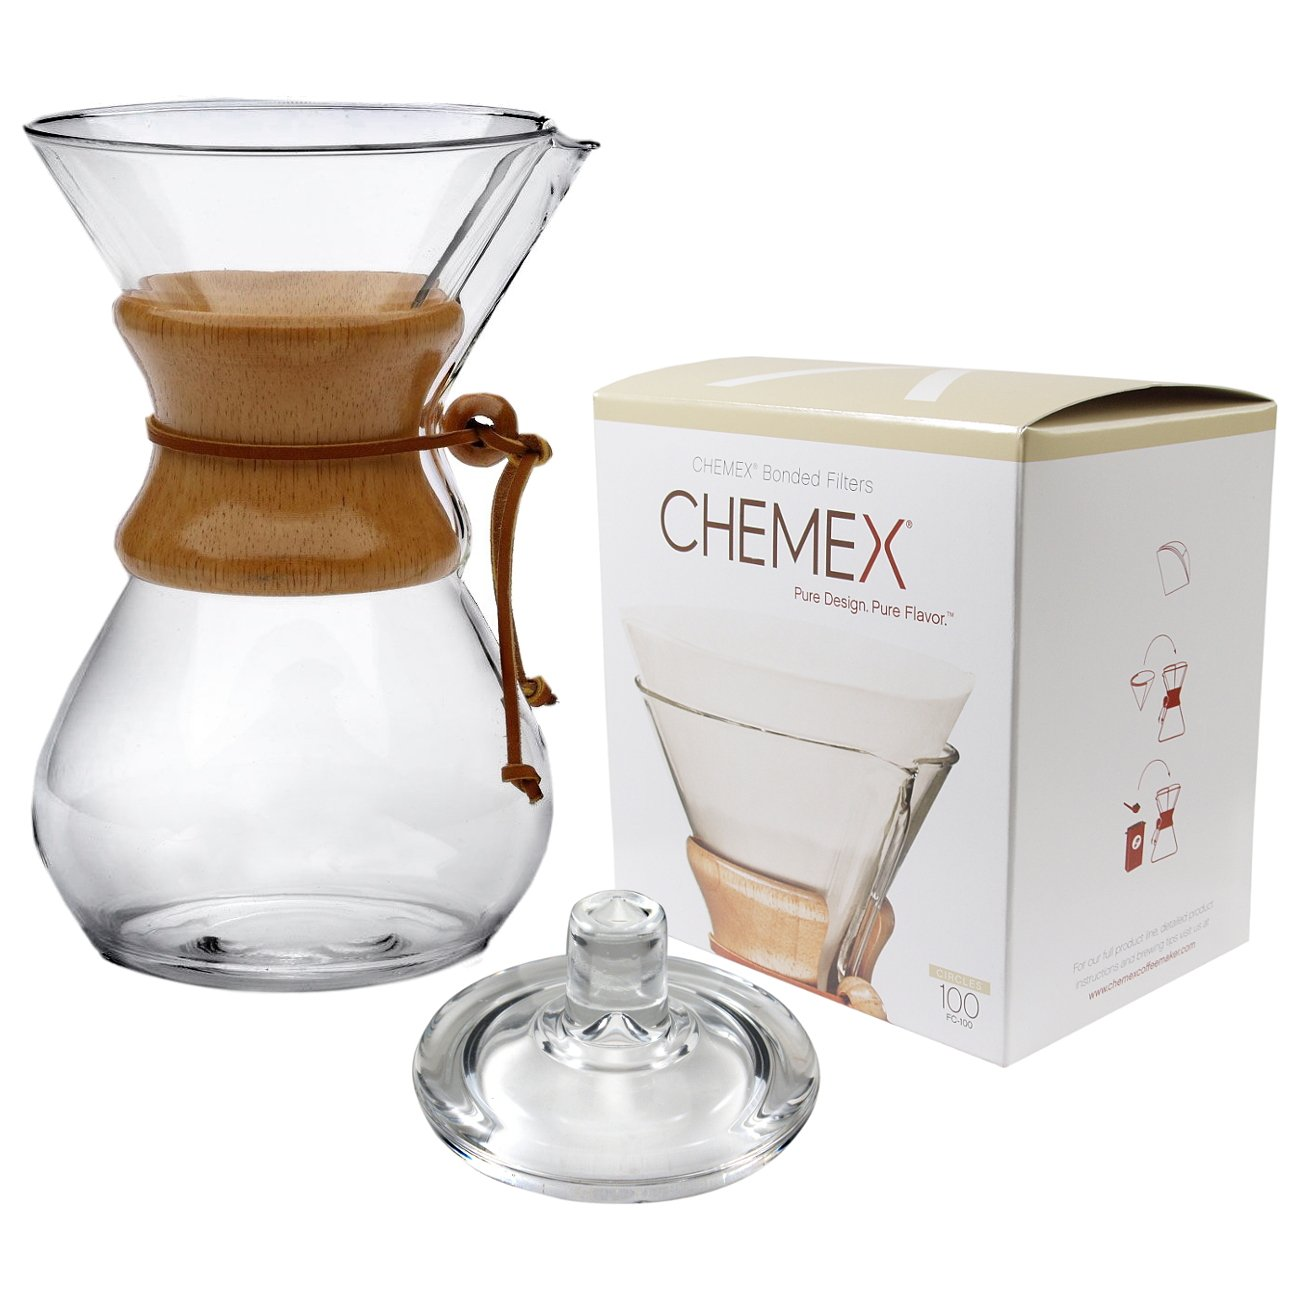 Chemex Classic Wood Collar and Tie Glass 50 Ounce Coffee Maker with Cover and 100 Count Bonded Circle Coffee Filters by Chemex (Image #1)